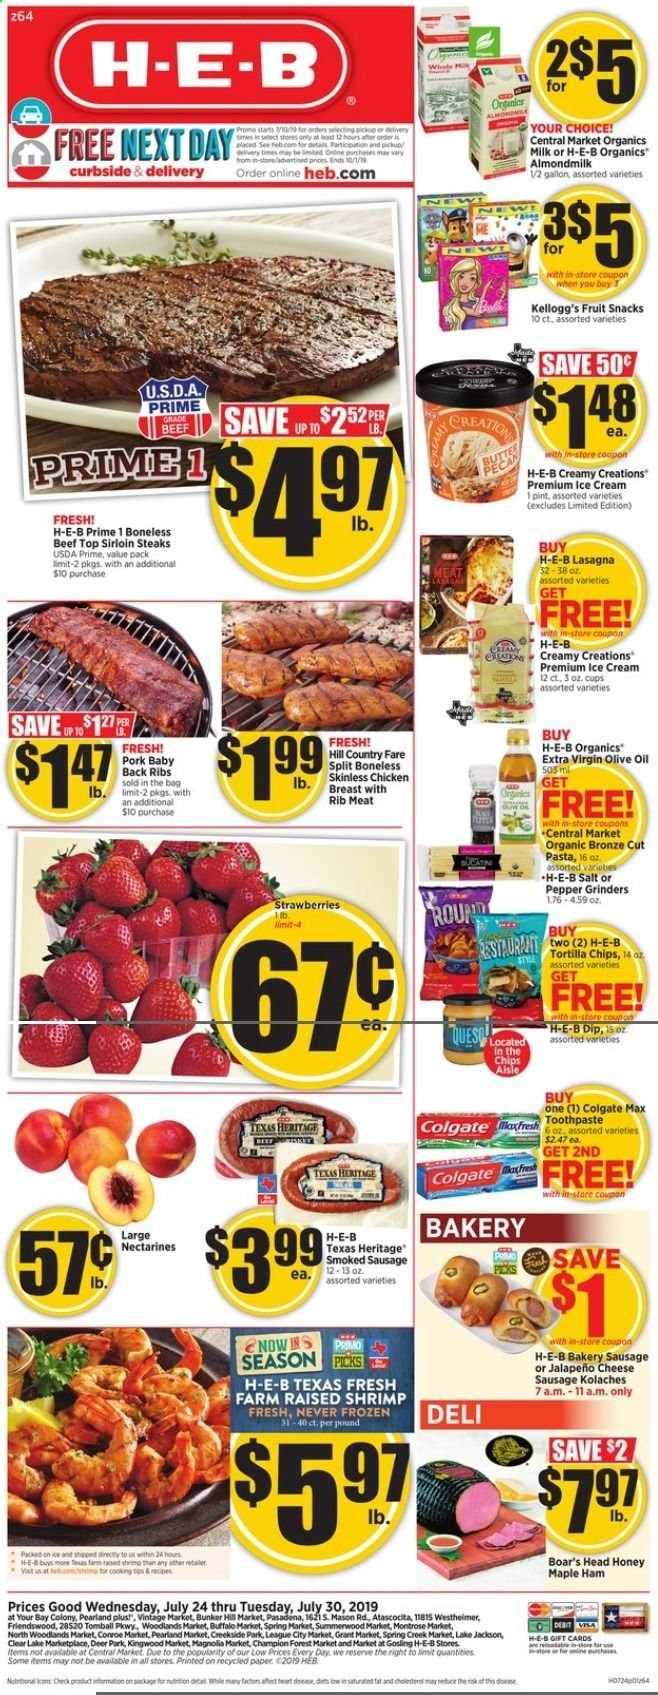 H-E-B Flyer  - 07.24.2019 - 07.30.2019. Page 1.